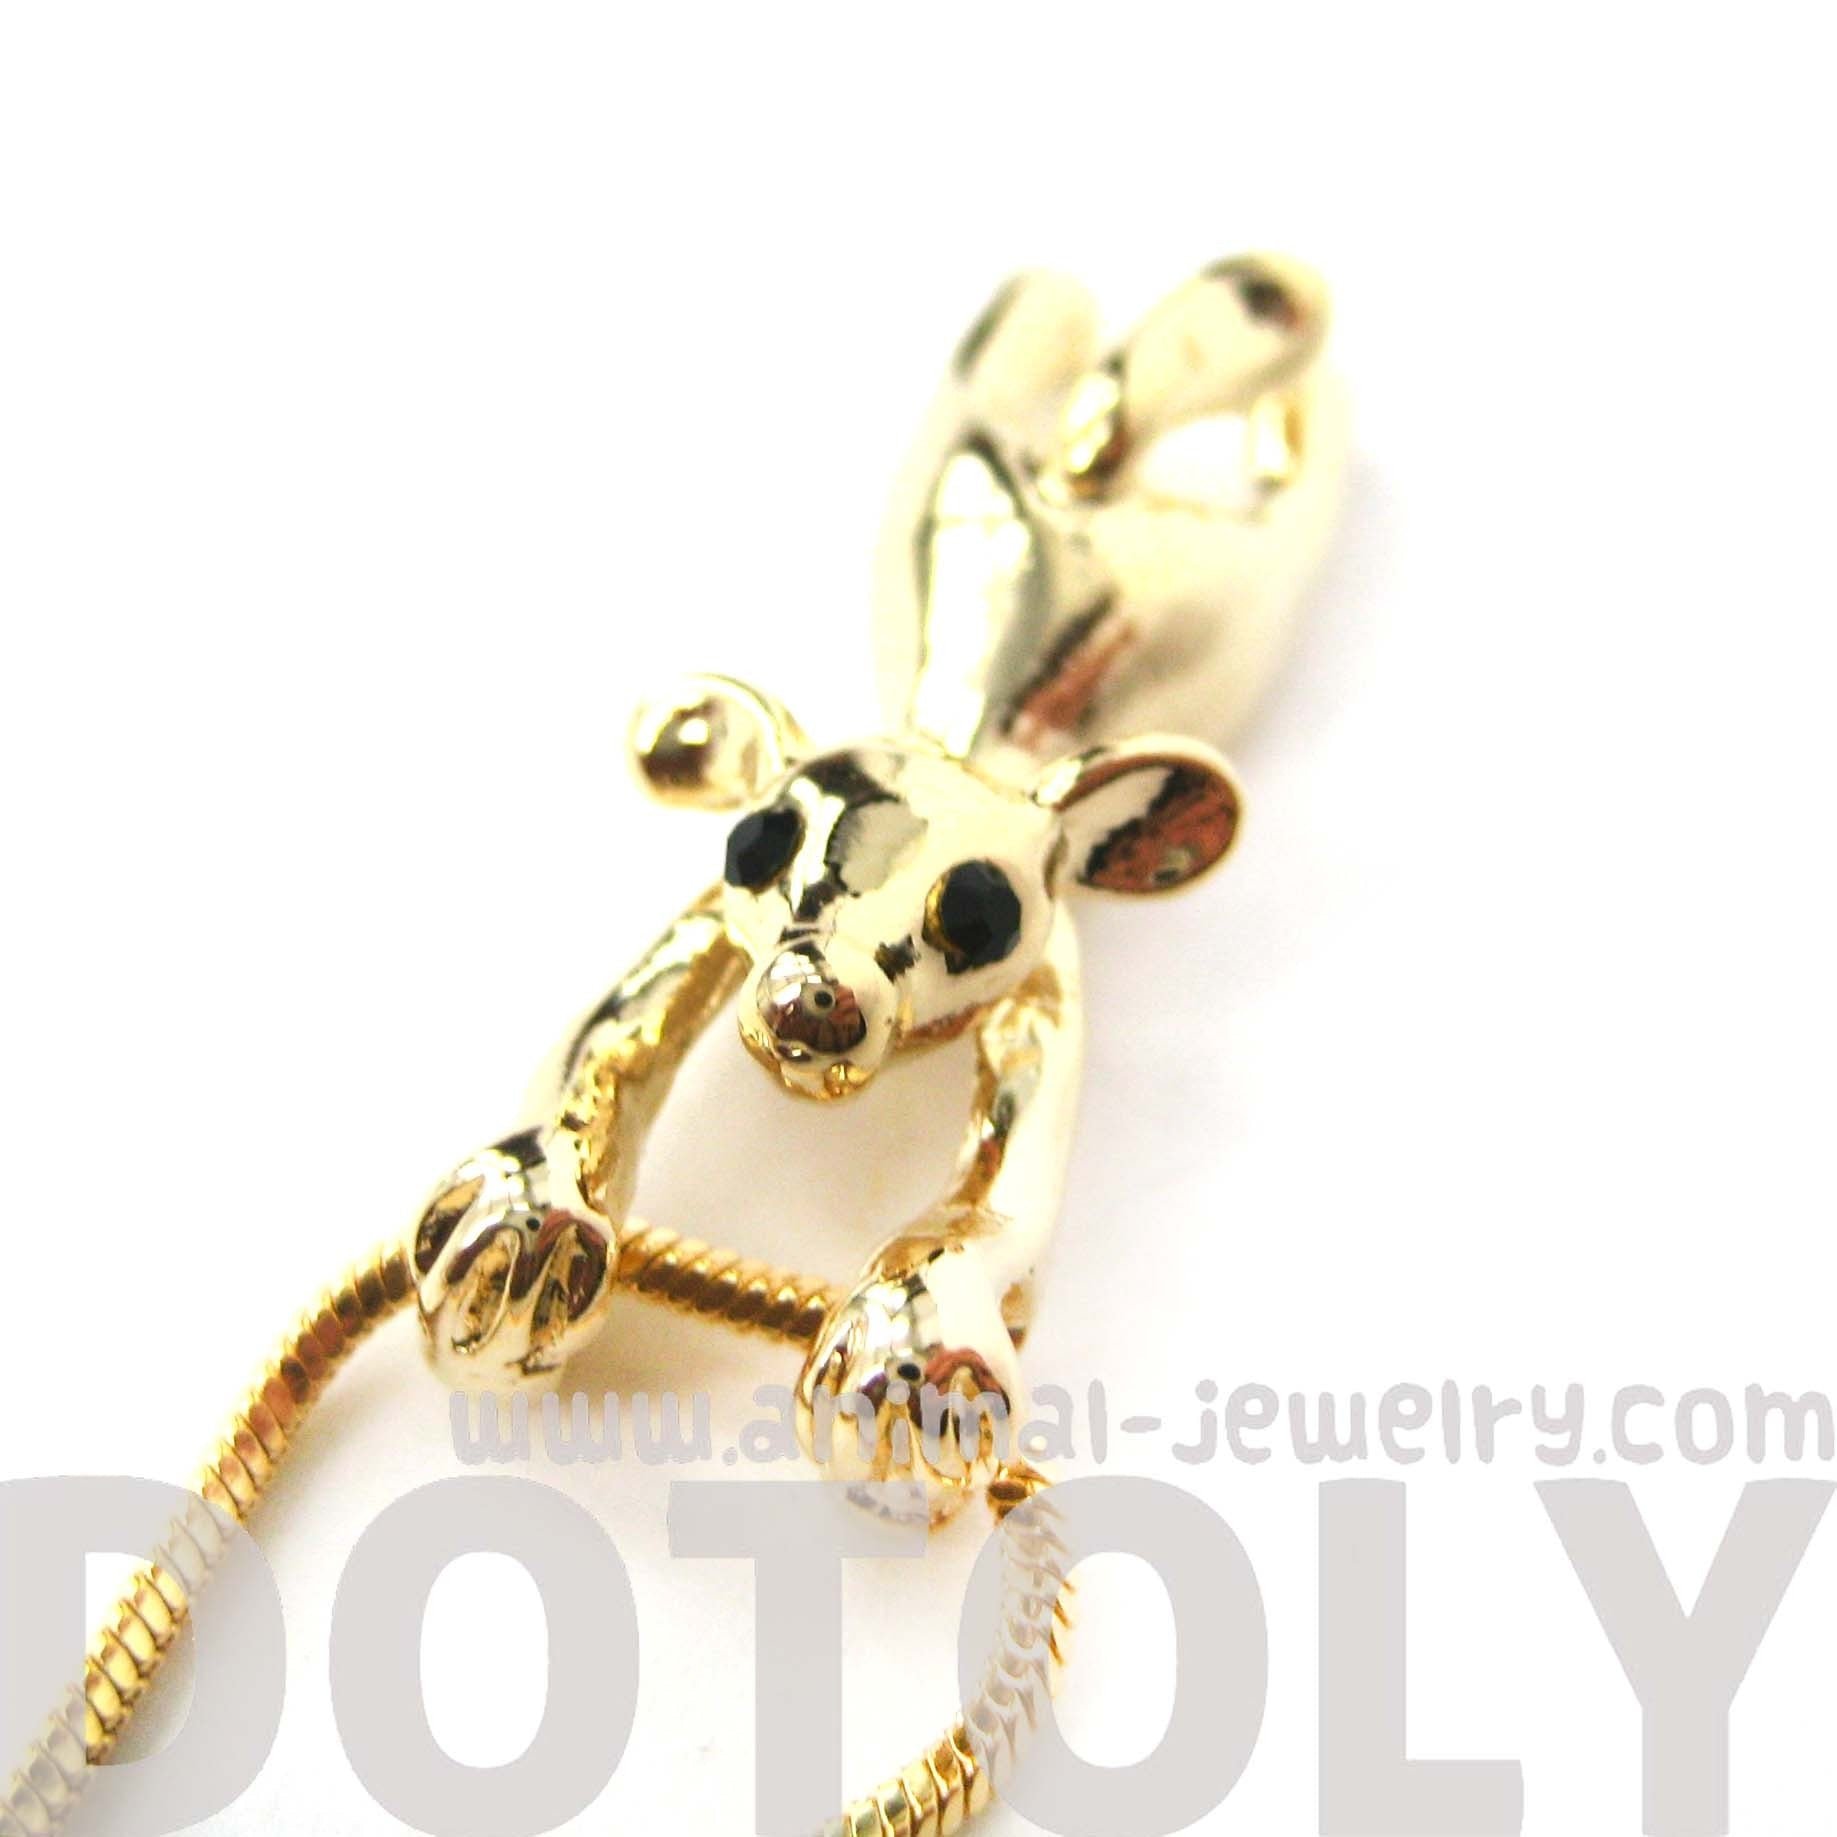 mouse-dangling-off-the-edge-pendant-necklace-in-gold-animal-jewelry